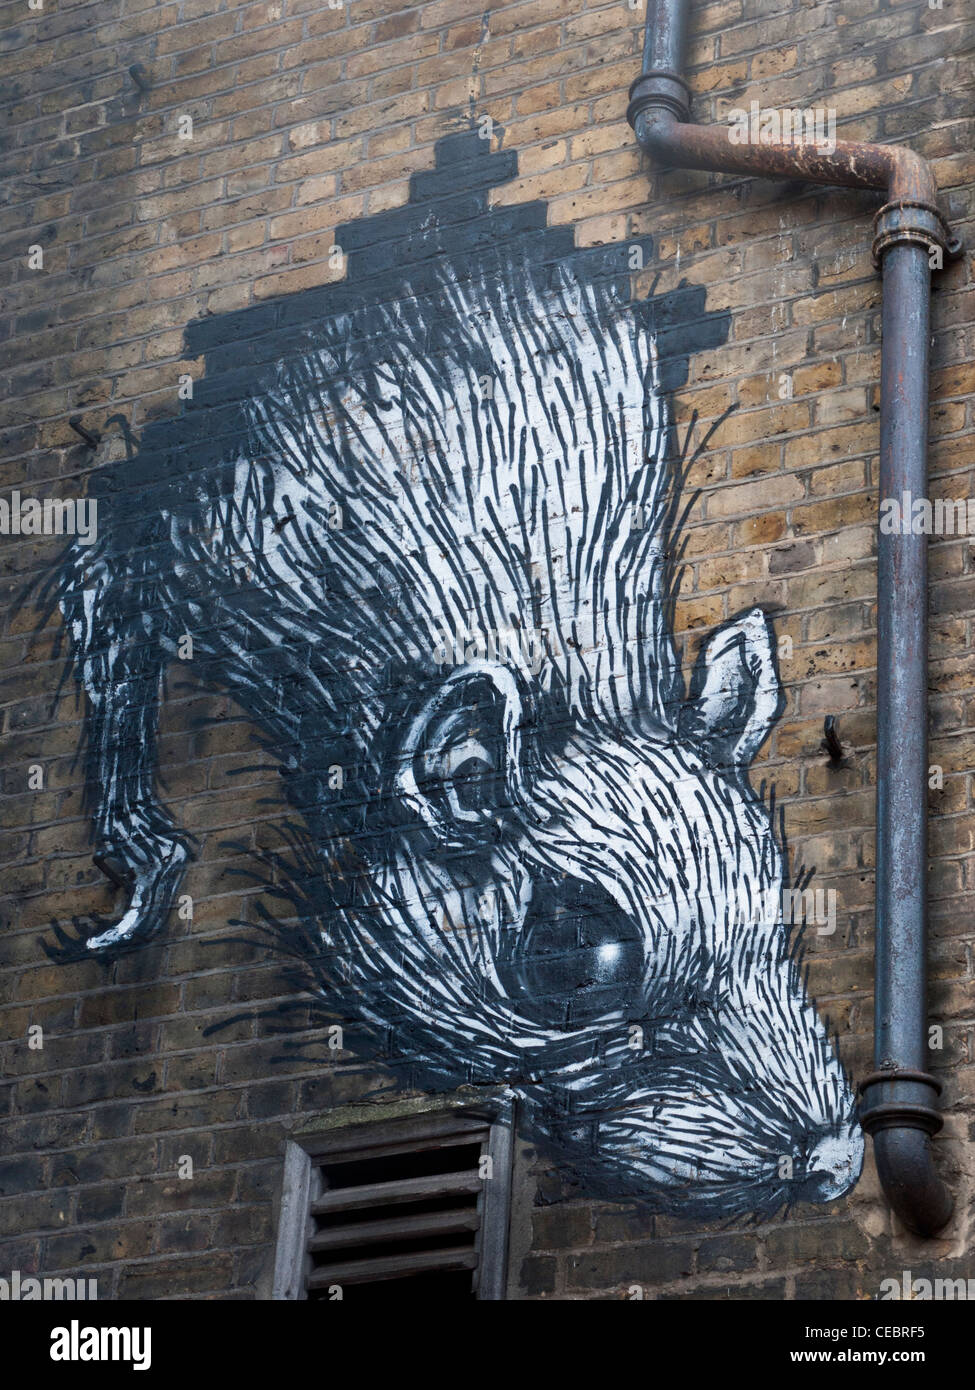 Painting of a rat on a wall in east London, England. - Stock Image